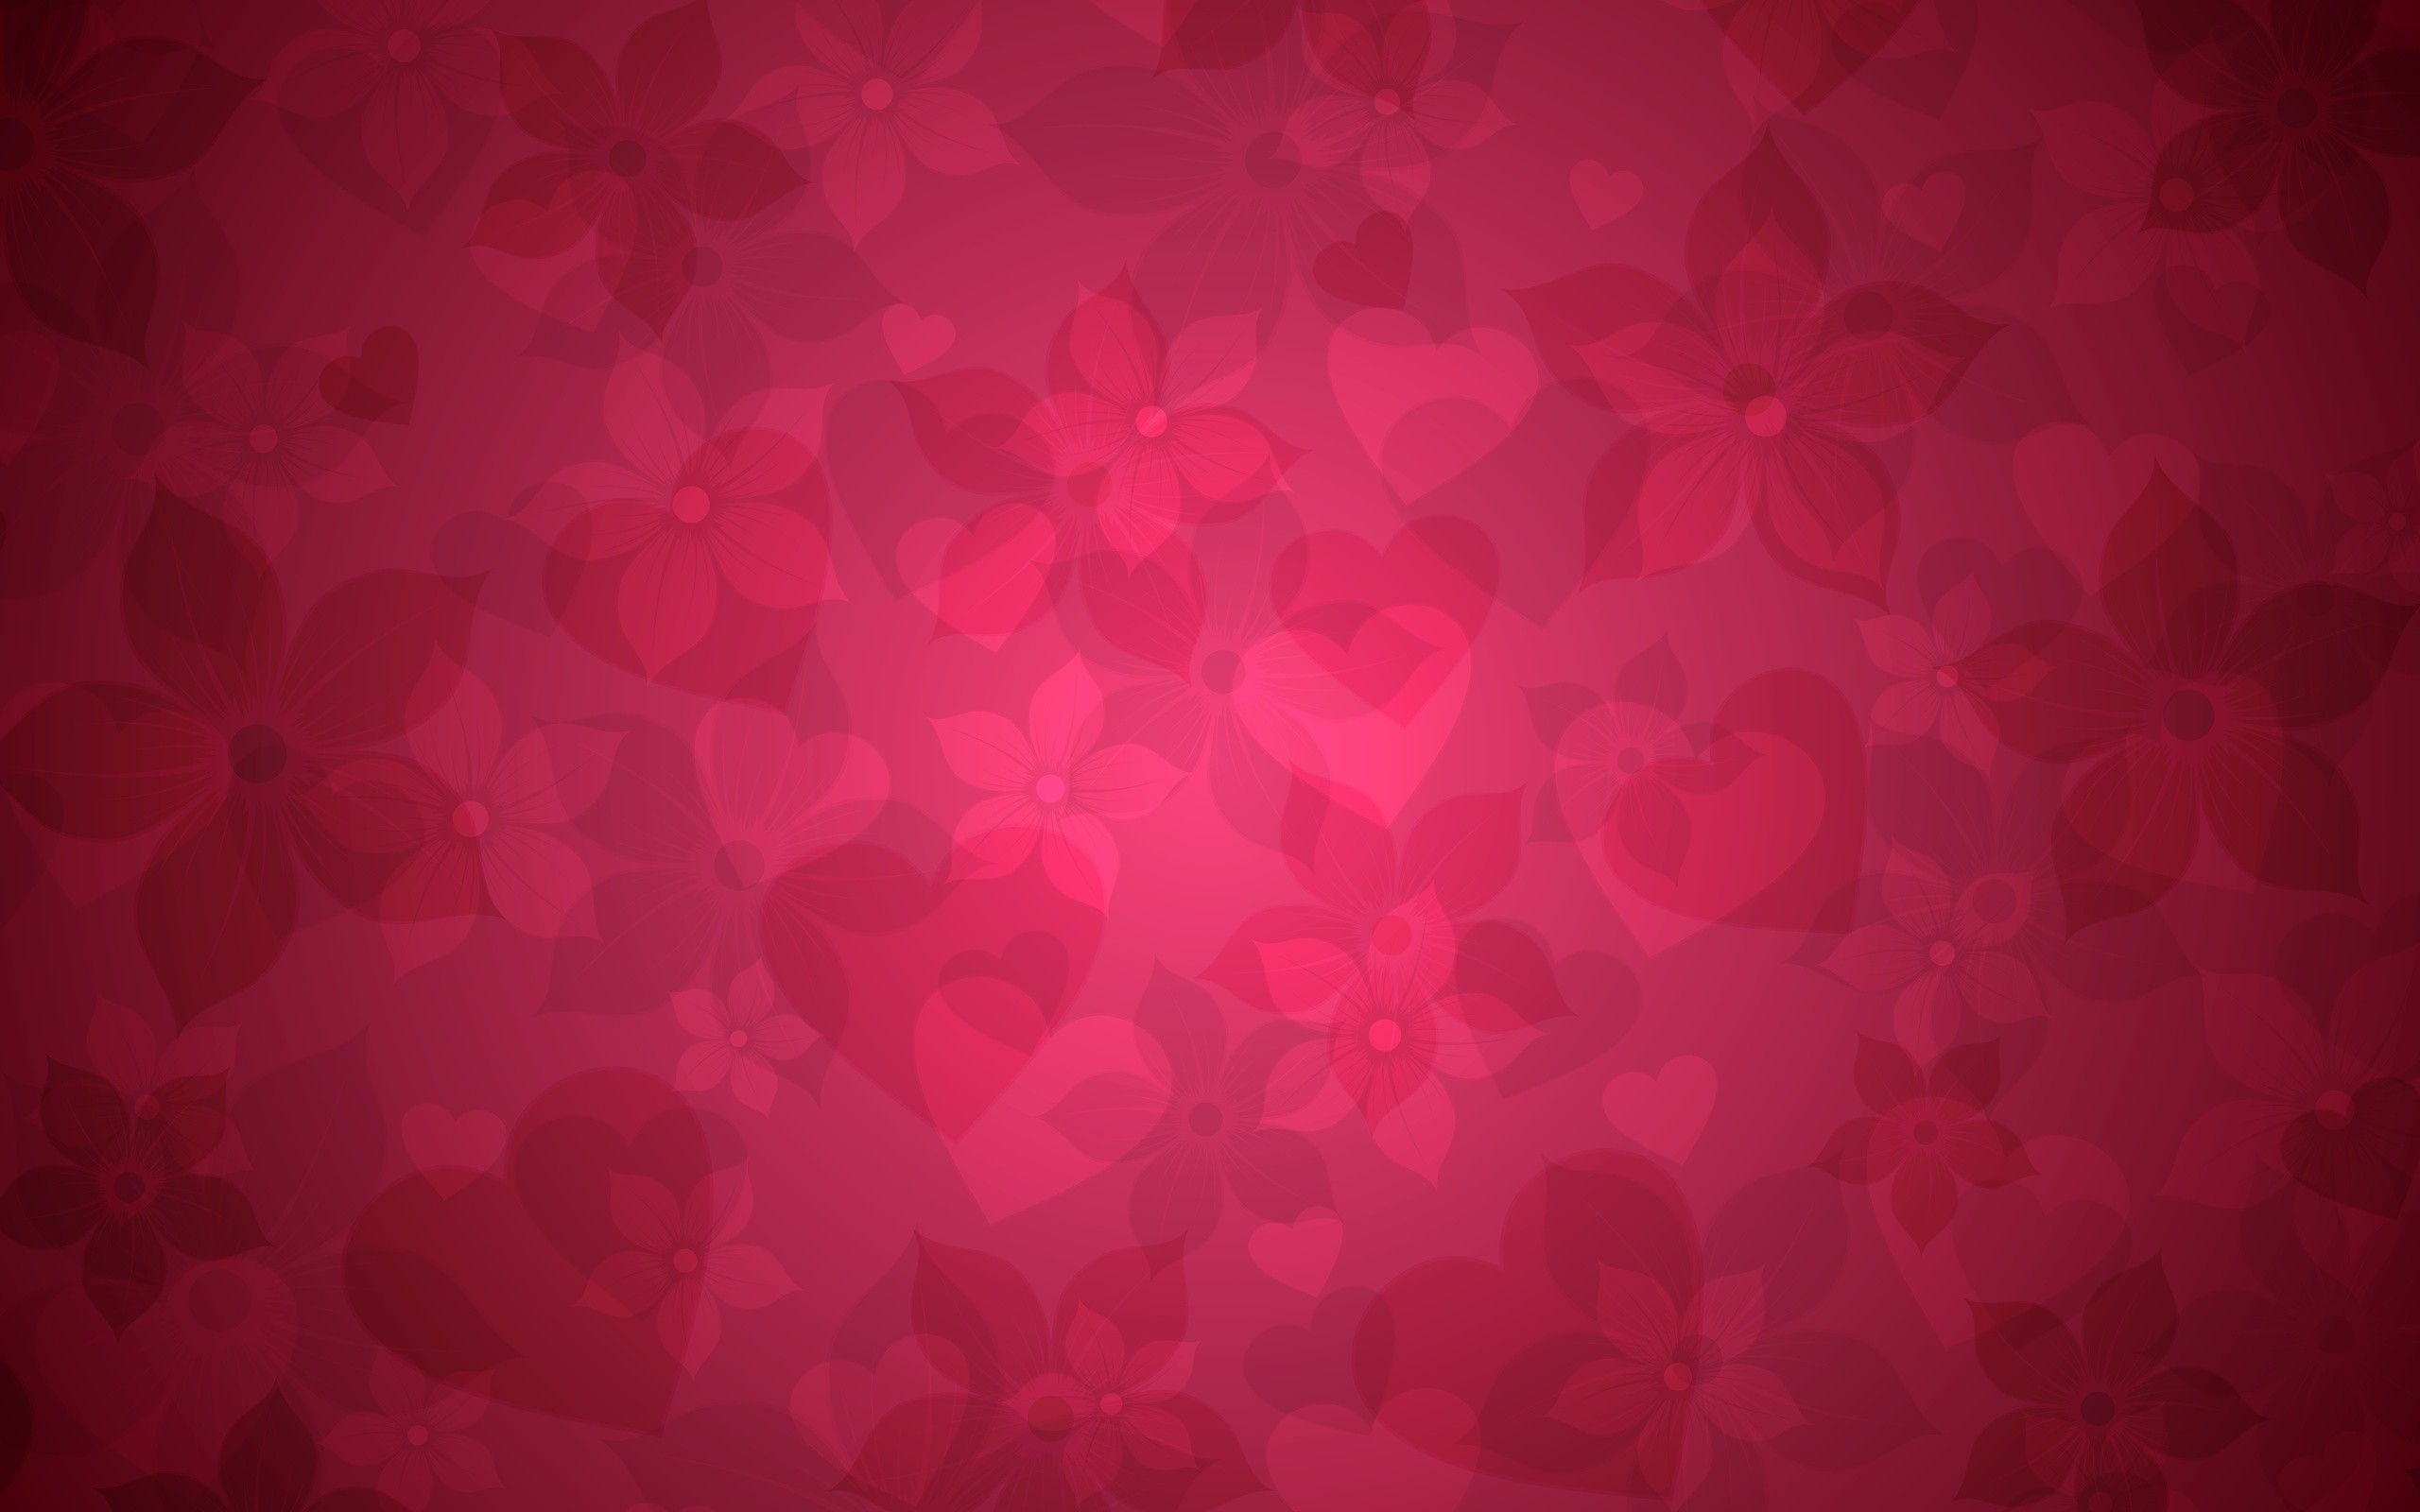 Wallpaper Background, Hearts, Flowers, Graphic, Vivid